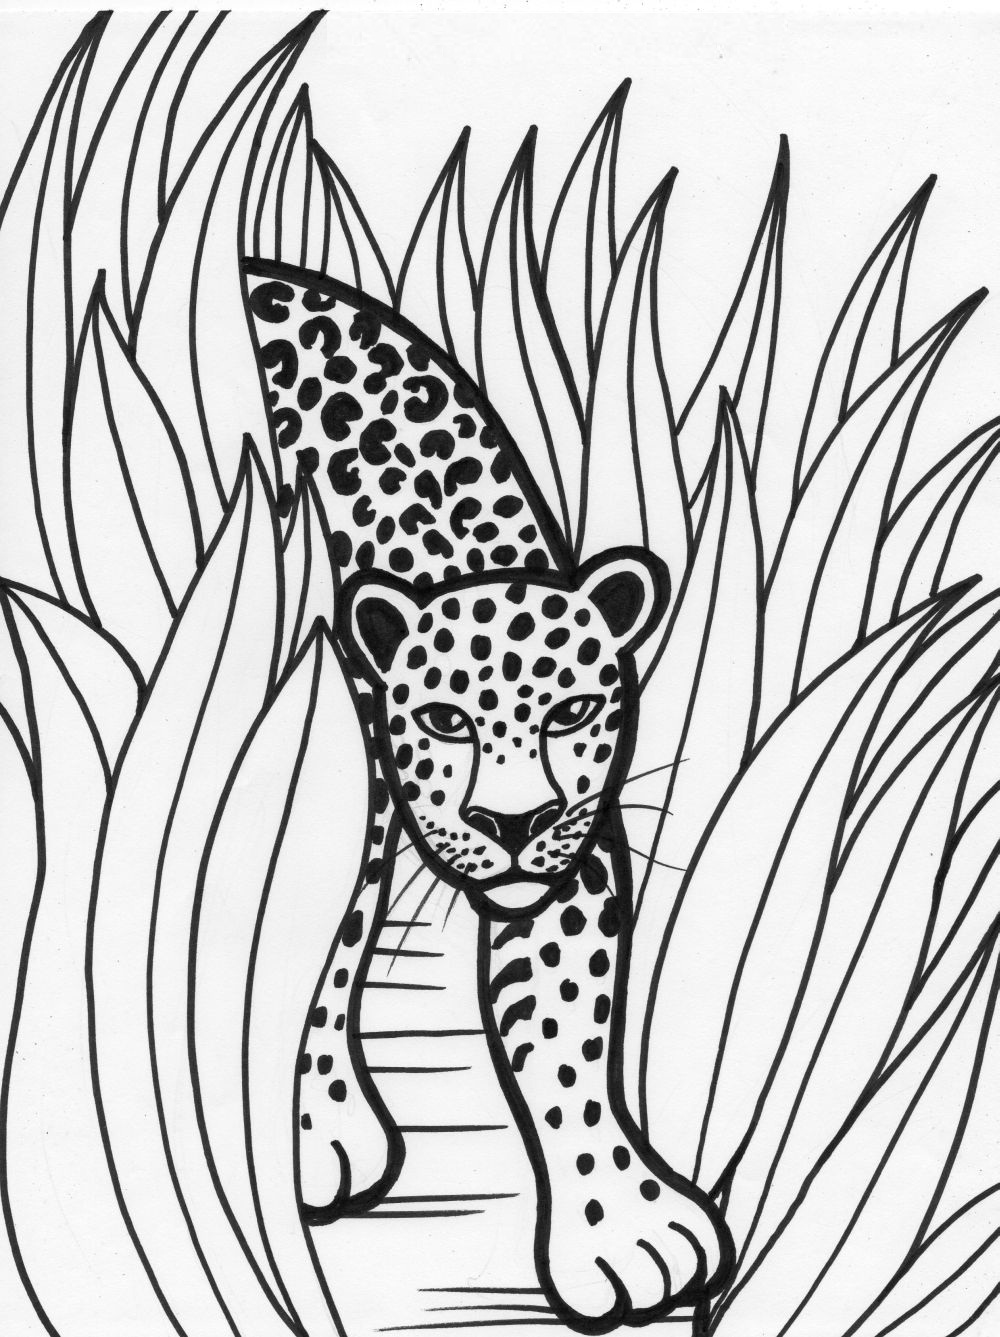 coloring pictures to color for kids free printable tangled coloring pages for kids cool2bkids color for coloring pictures to kids